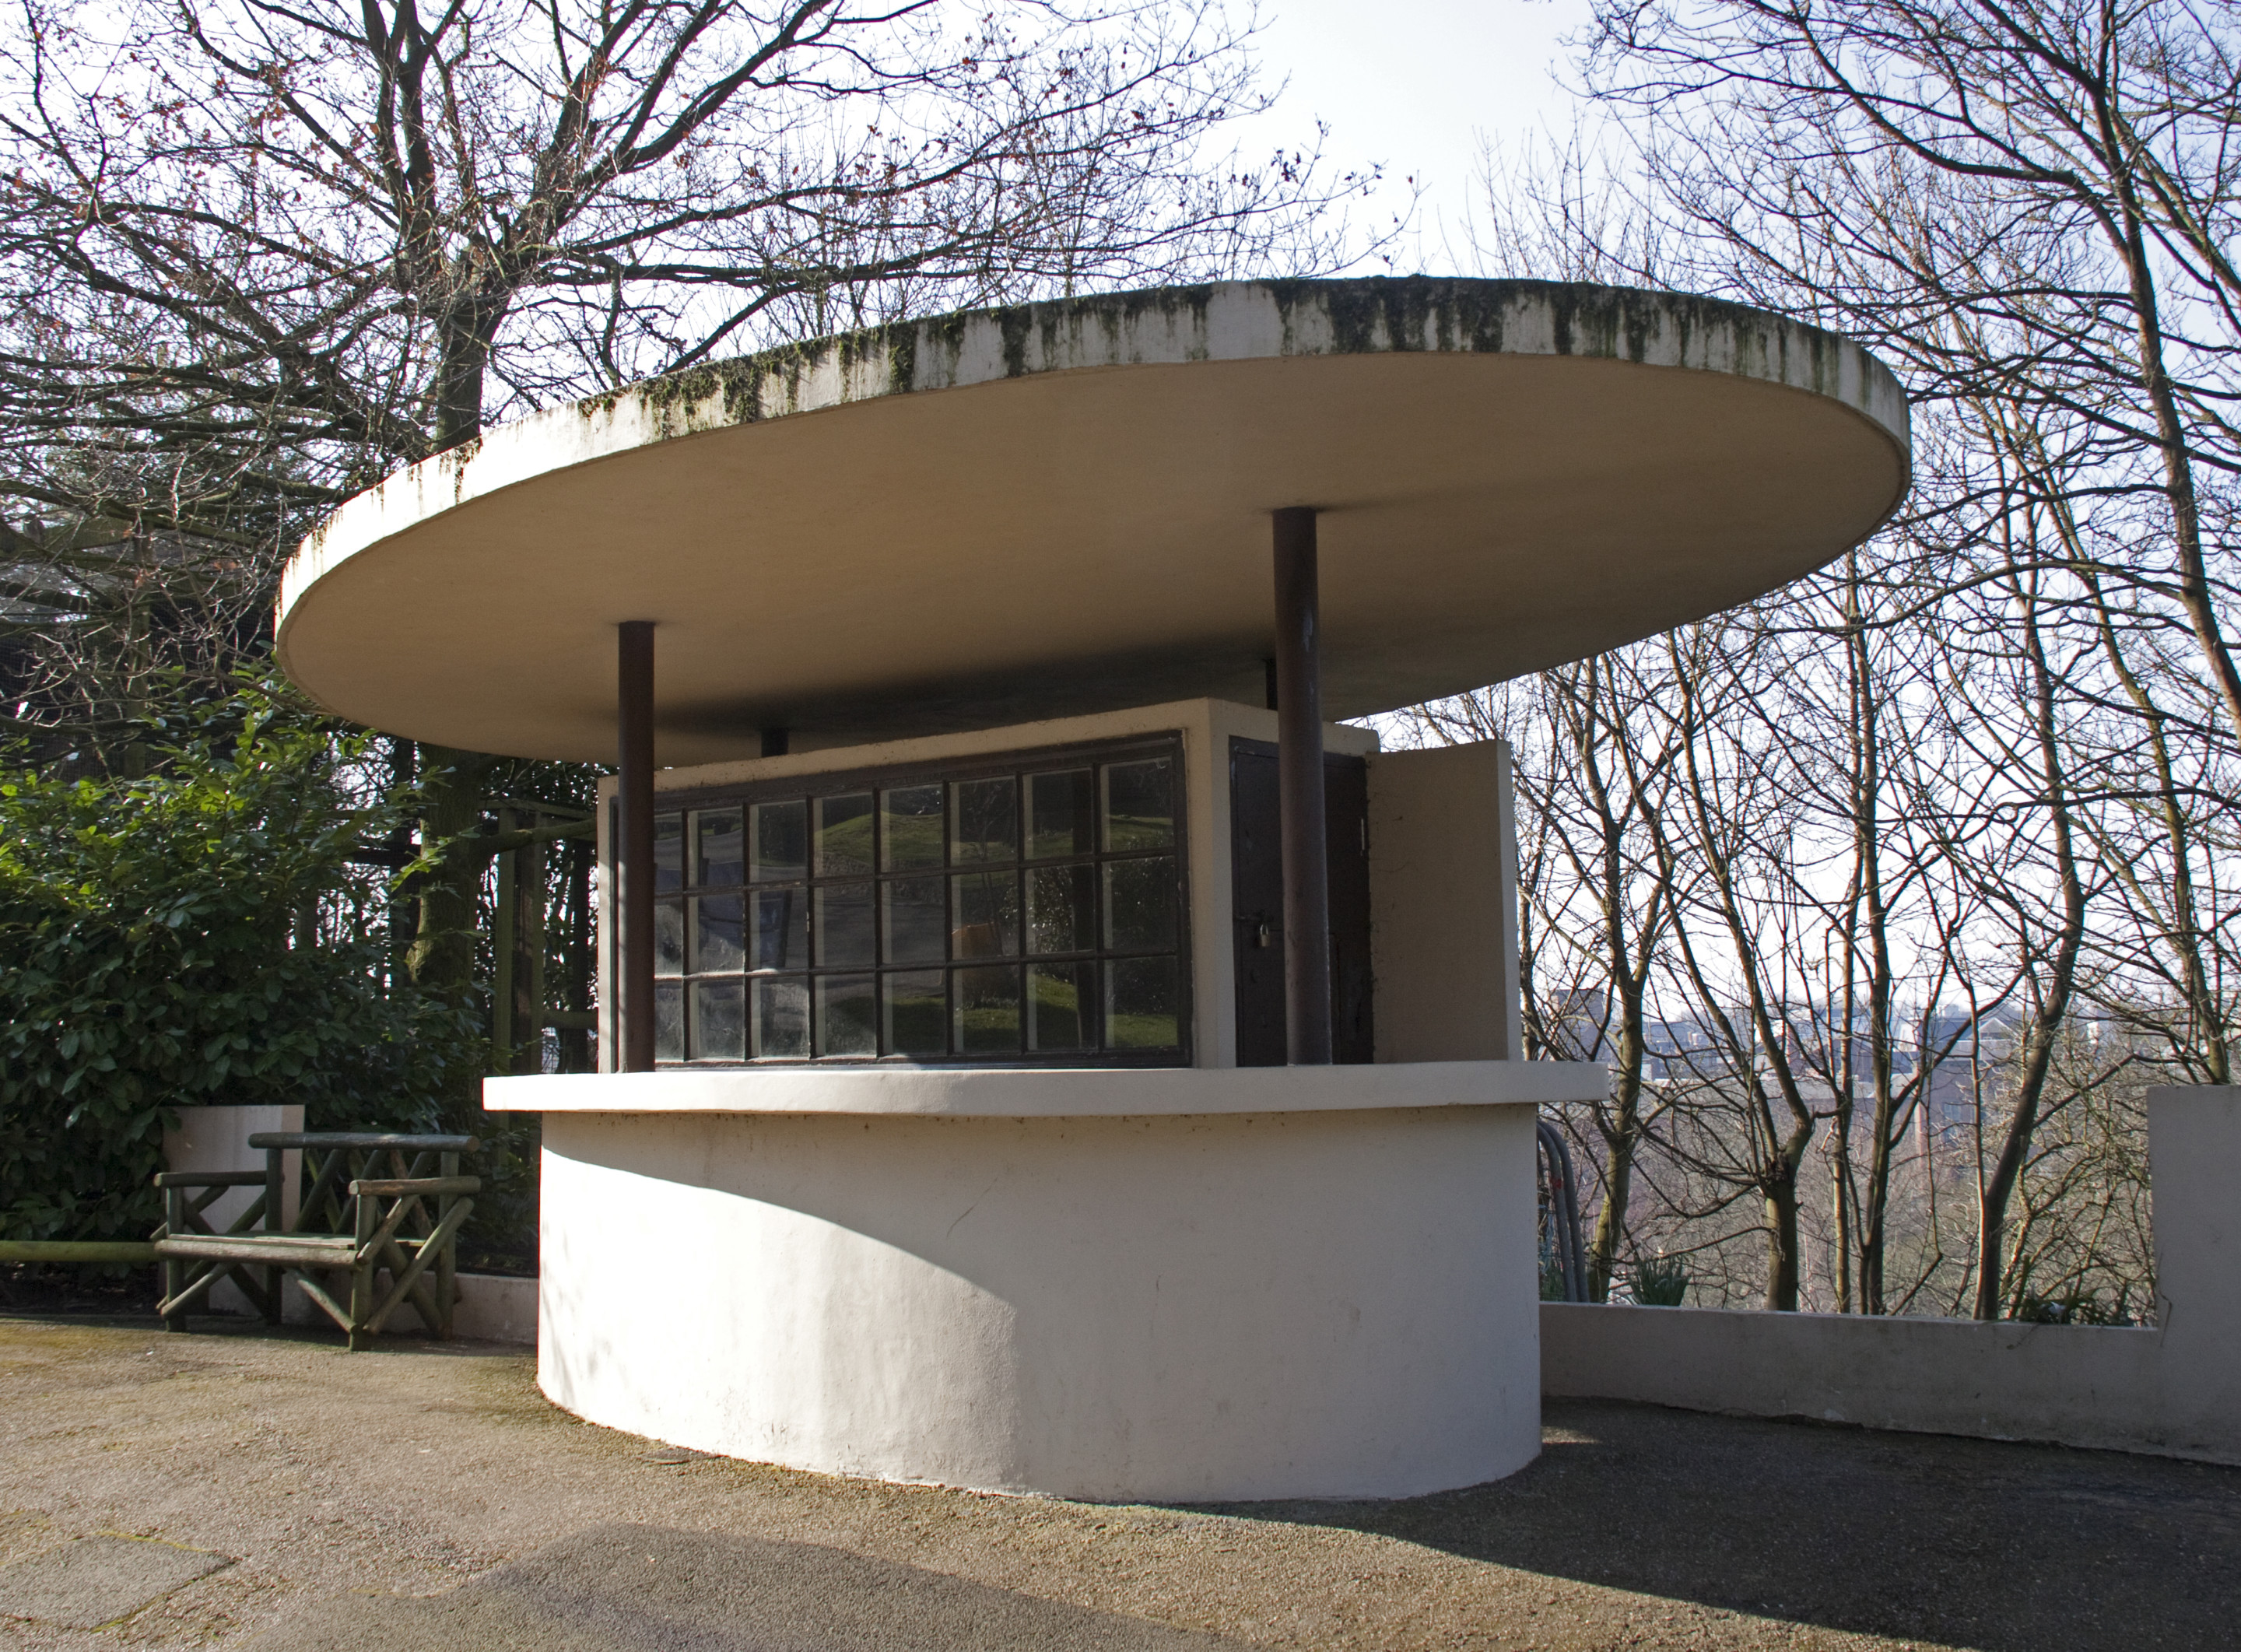 modernist structure at Dudley Zoo in UK